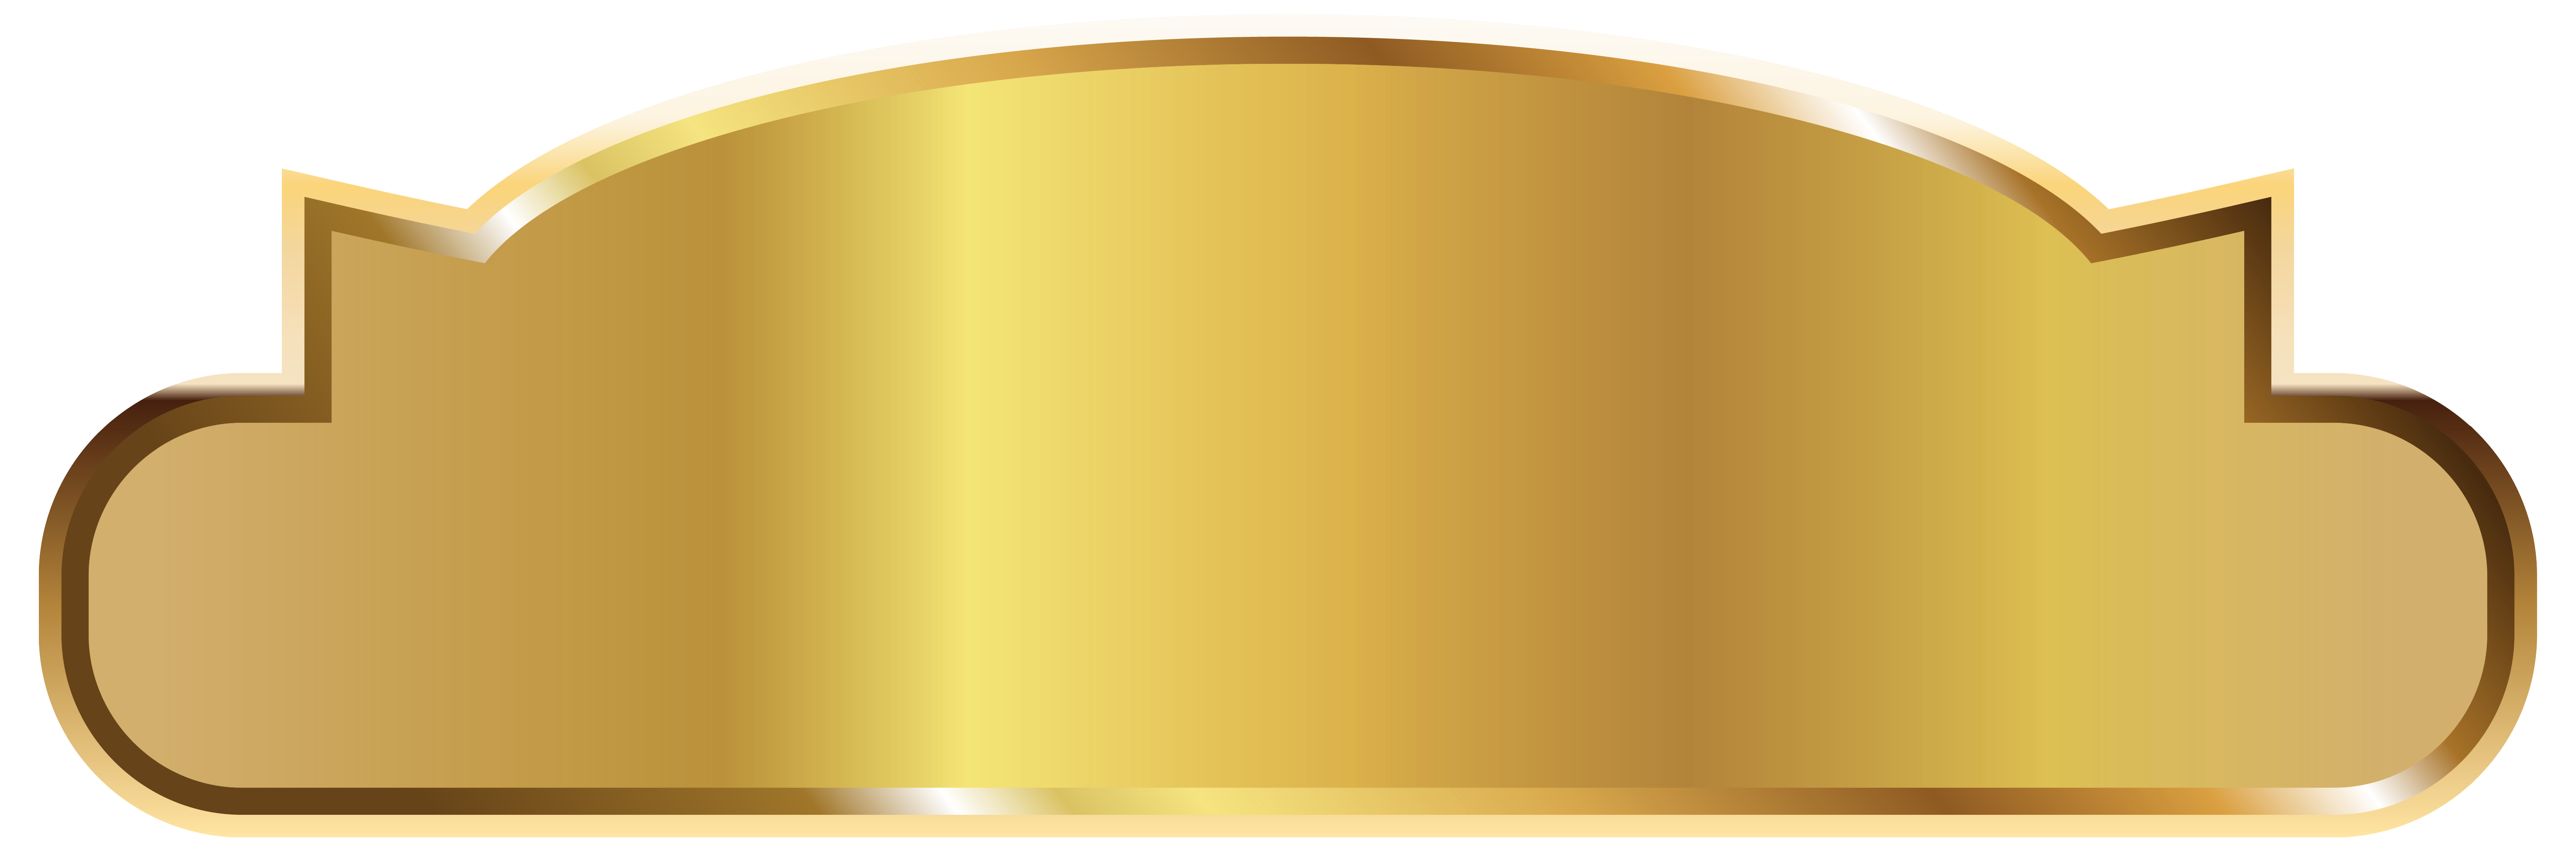 Gold PNG images free download.